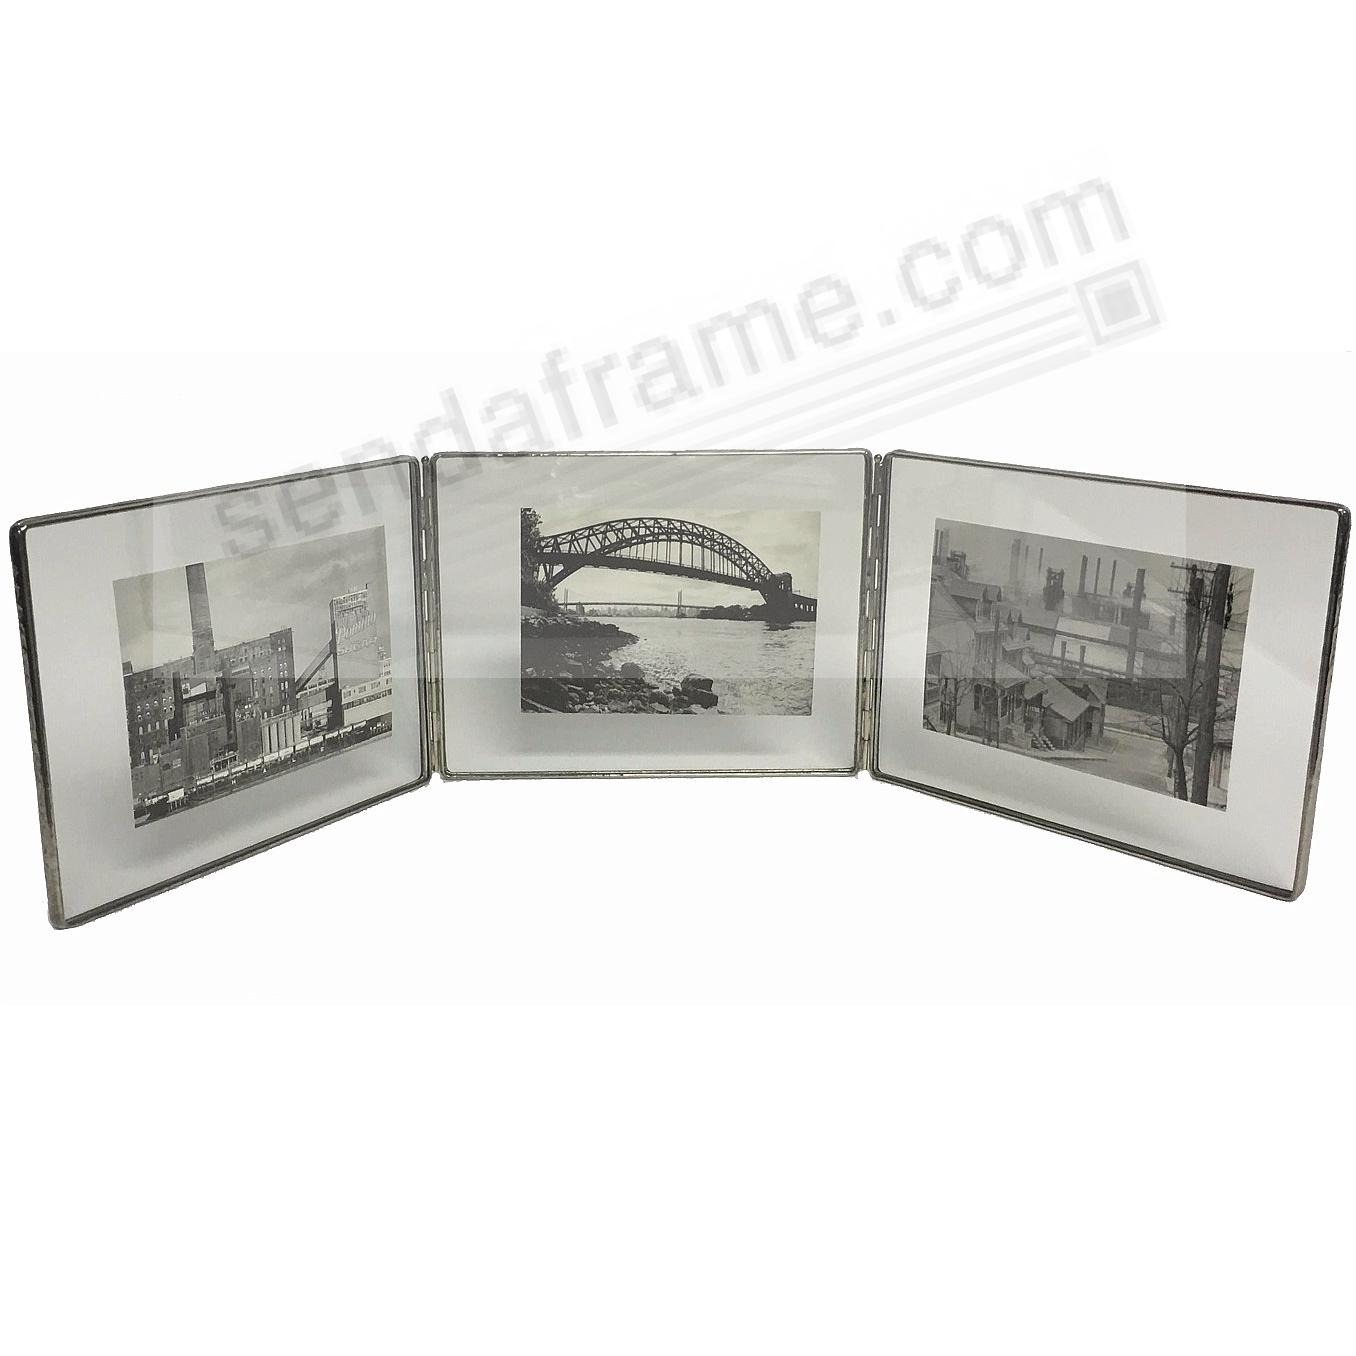 Silver clear glass float frame 9x7 7x5 horz hinged for Engraved digital photo frame